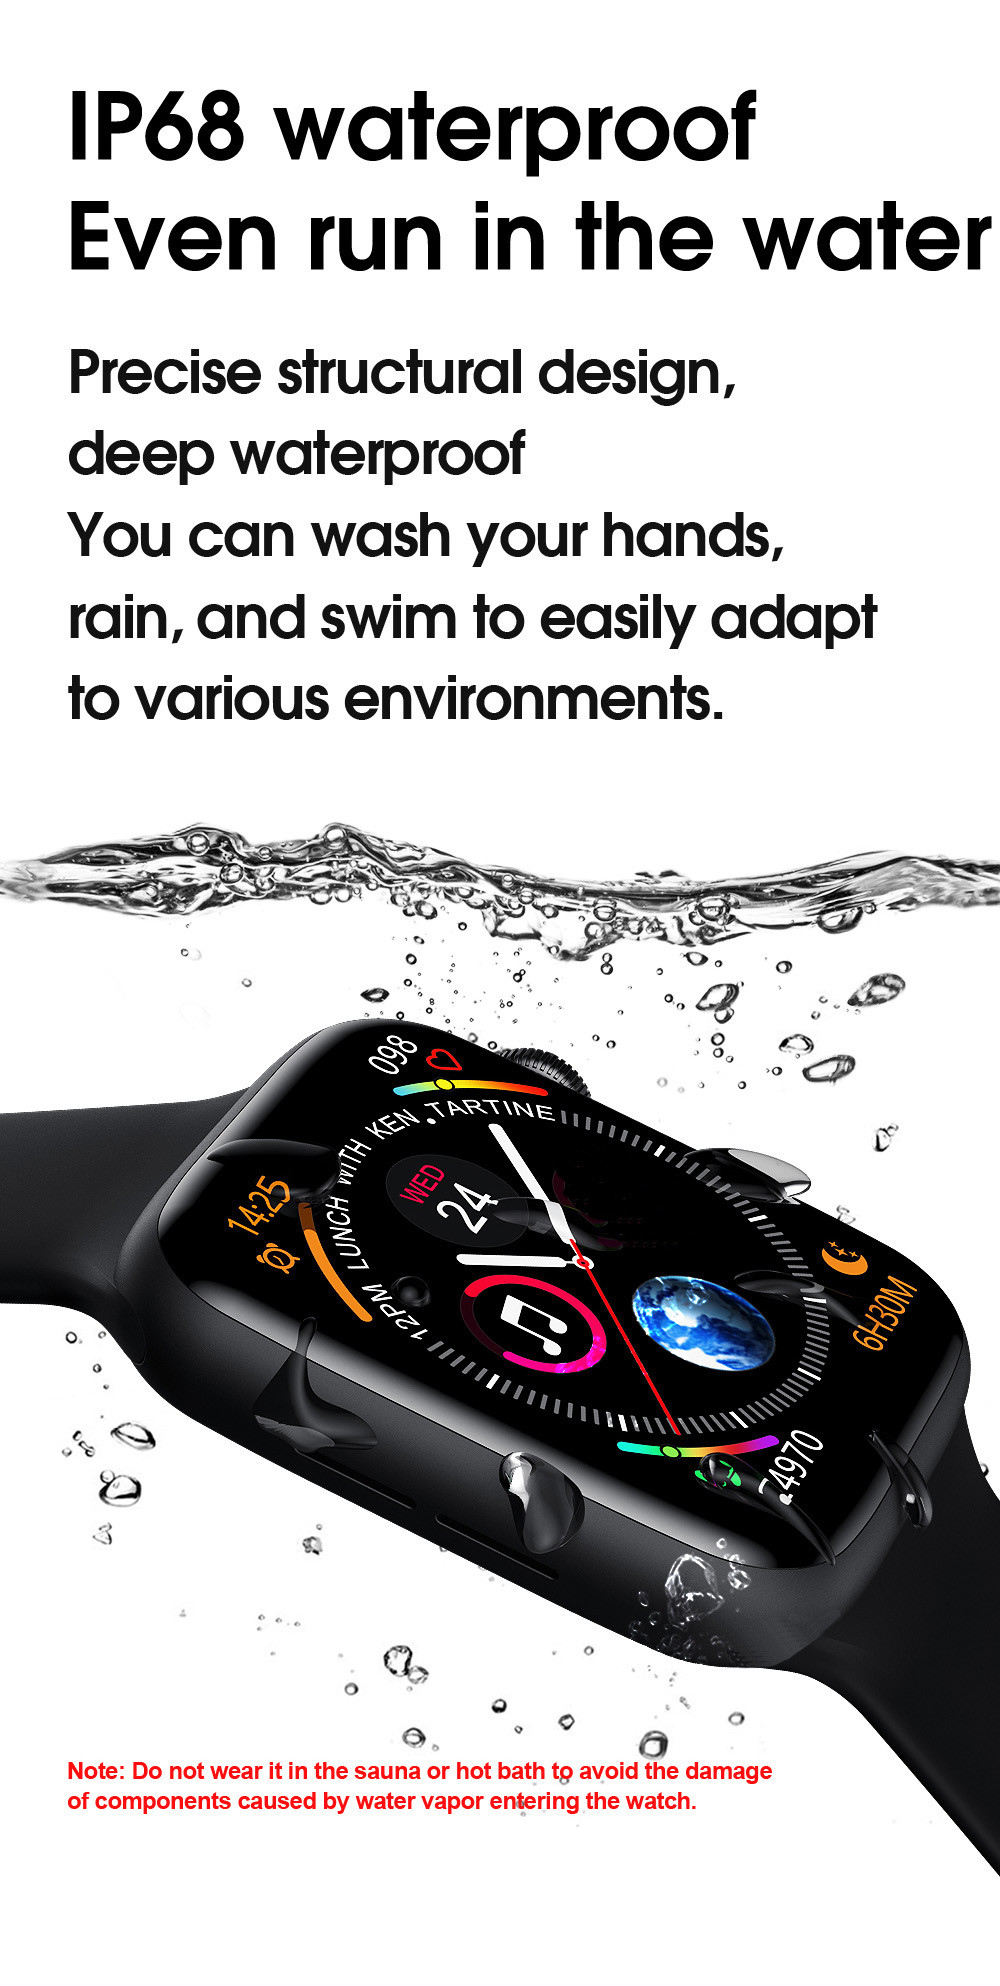 H252dca9b014e47b4afd265fb2f5421cez 2021 Original IWO W26 W46 Smart Watch Men/Women Heart Rate/Blood Pressure Monitor Clock Smartwatch For Android IOS PK HW22 HW16